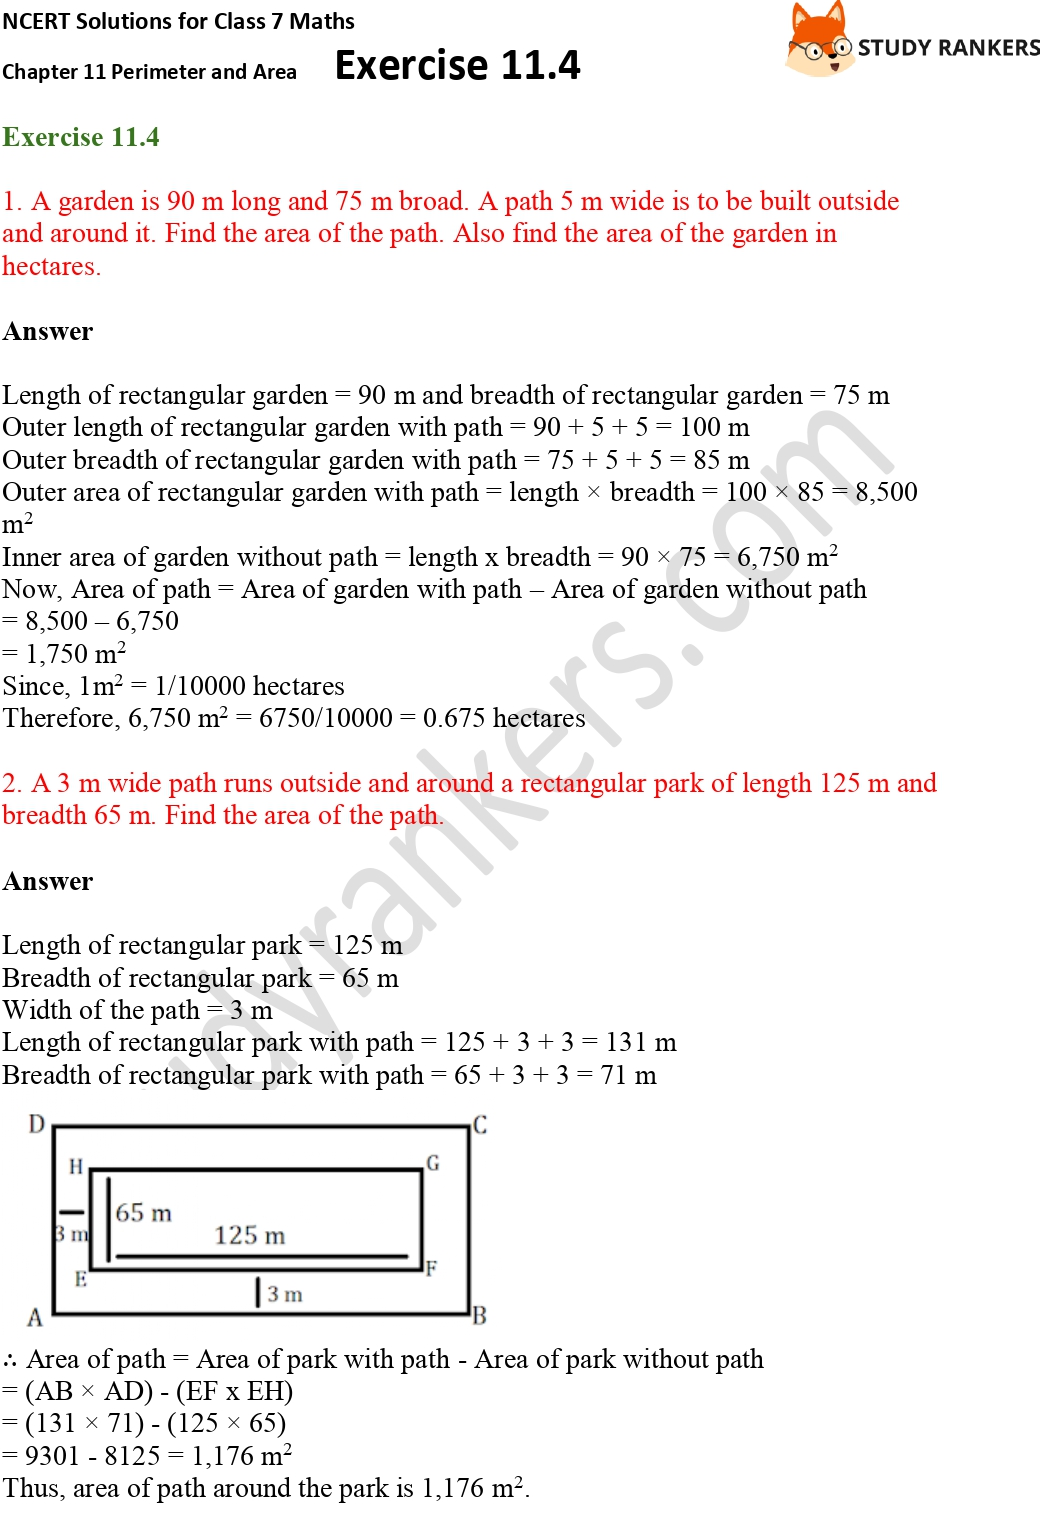 NCERT Solutions for Class 7 Maths Ch 11 Perimeter and Area Exercise 11.4 Part 1